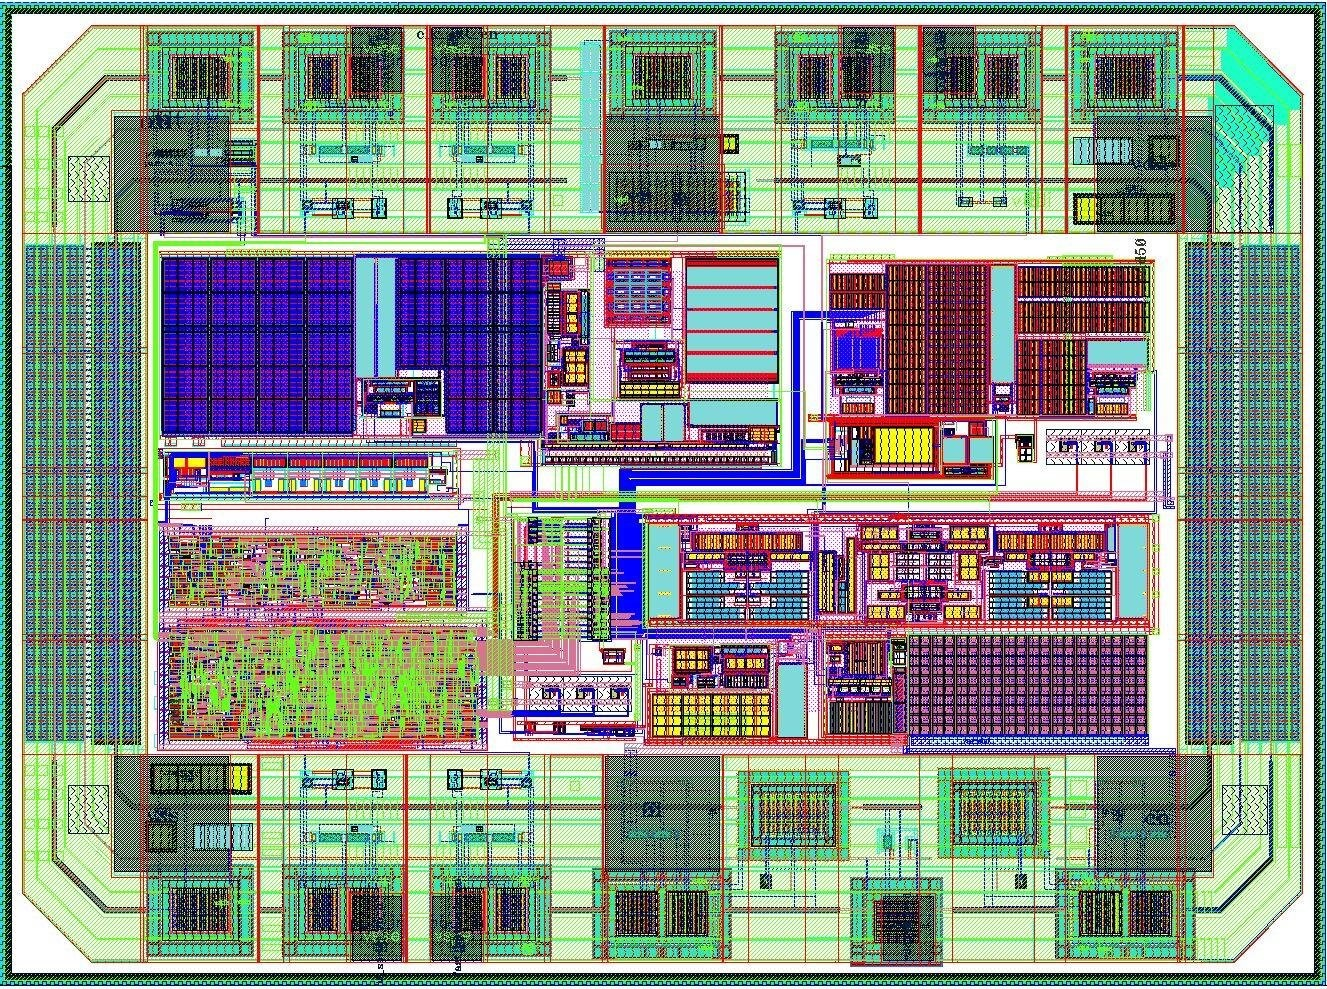 epc701-CSP6 General-Purpose Output-Driver Chips 24V/50mA